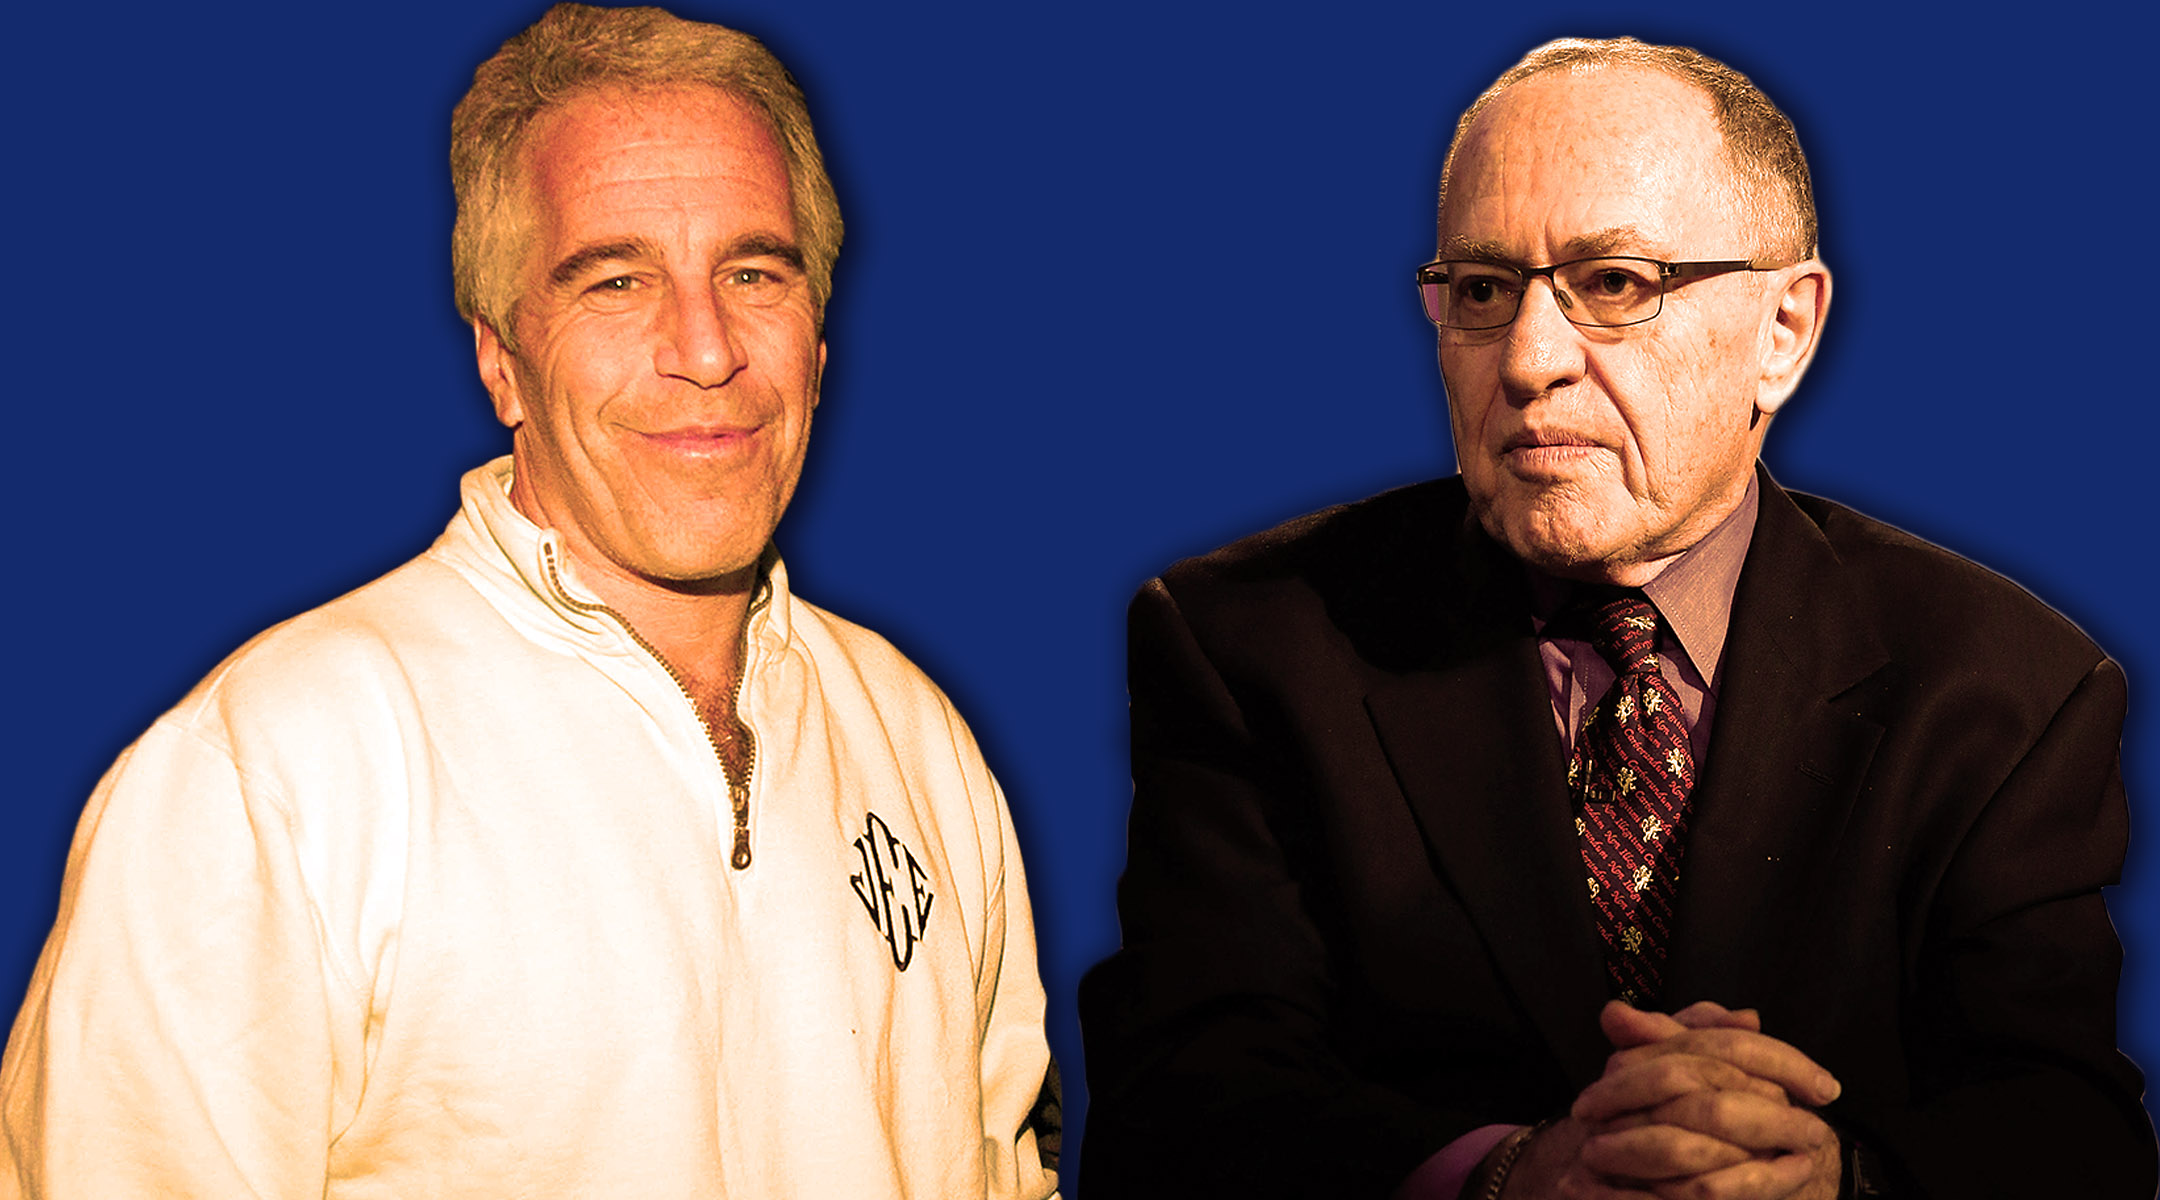 Alan Dershowitz, right, represented sex offender Jeffrey Epstein in a controversial 2008 plea deal and used to send him copies of his books to review before publication. (JTA illustration by Laura E. Adkins)